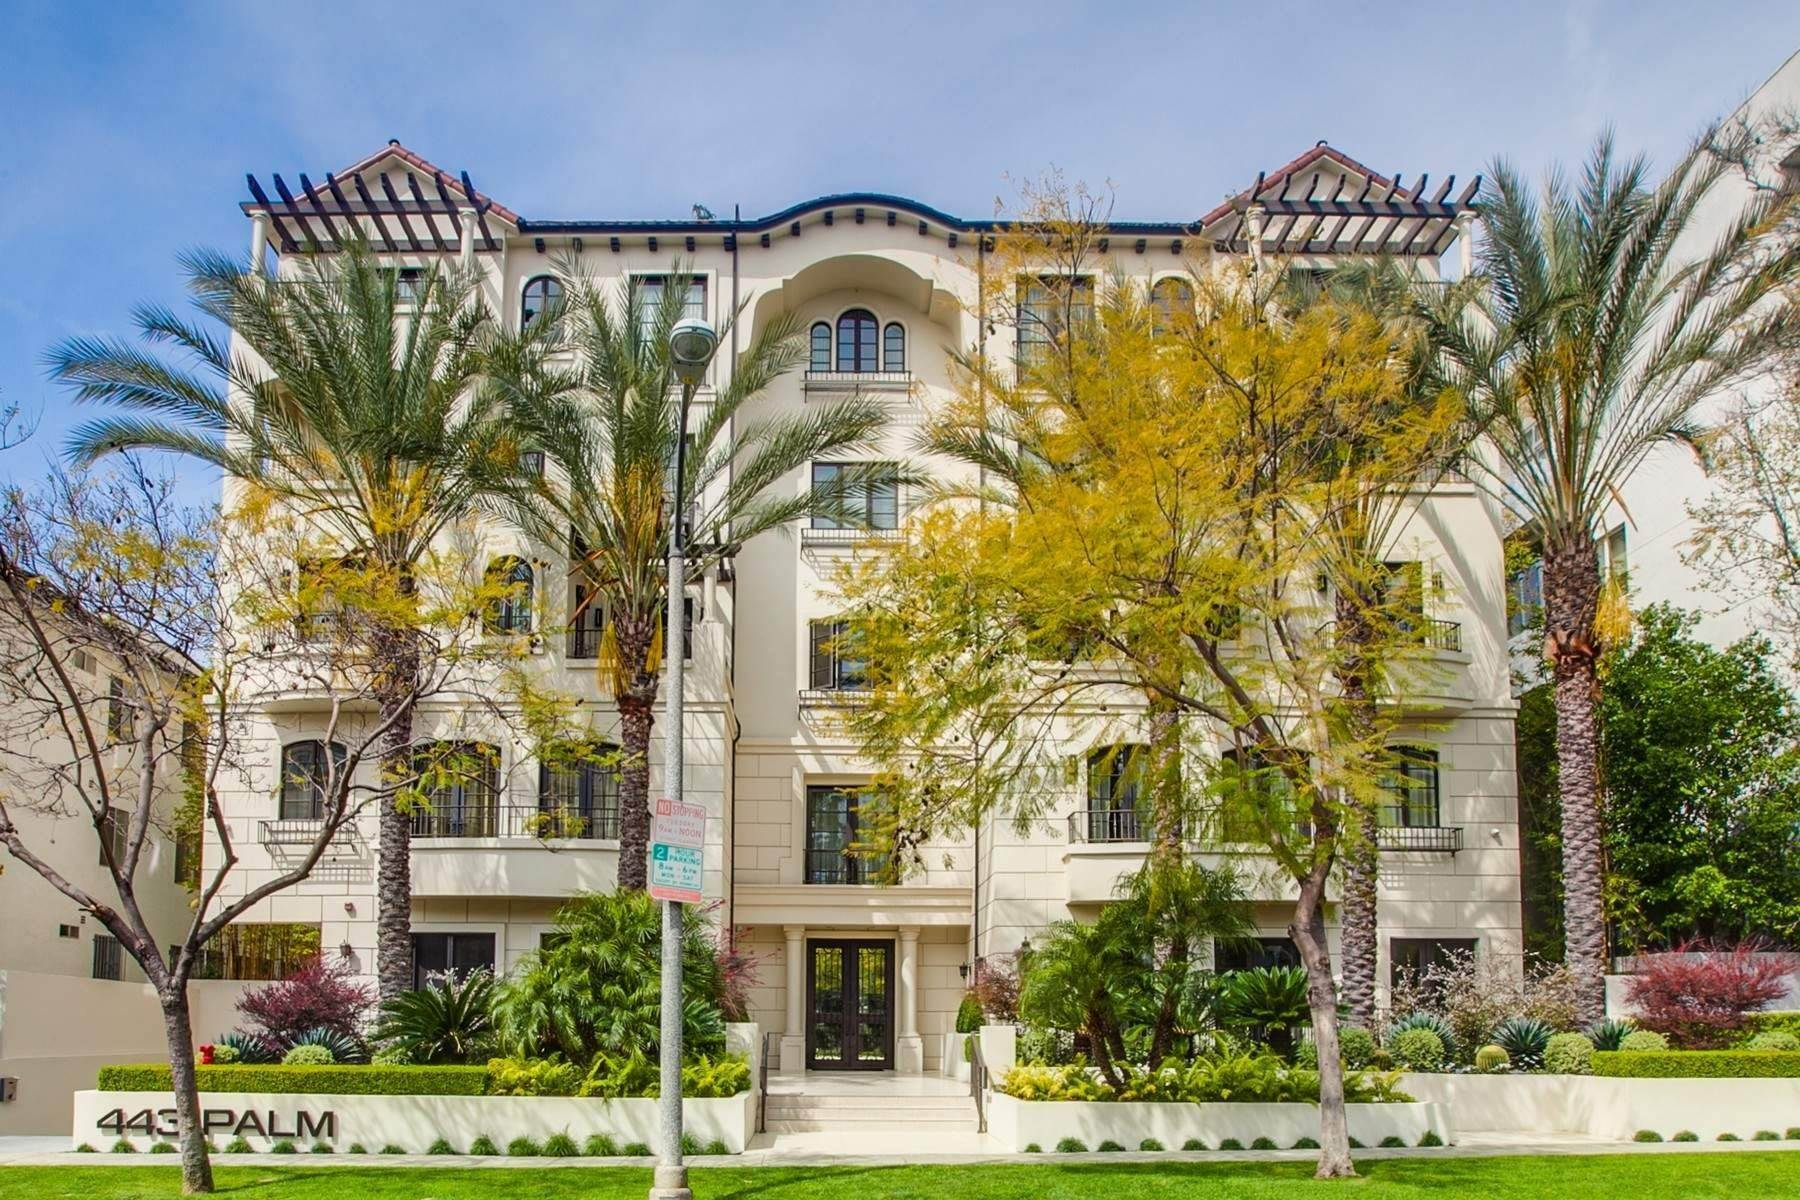 Condominiums for Sale at 443 Palm Drive, Unit 402 Beverly Hills, California 90210 United States